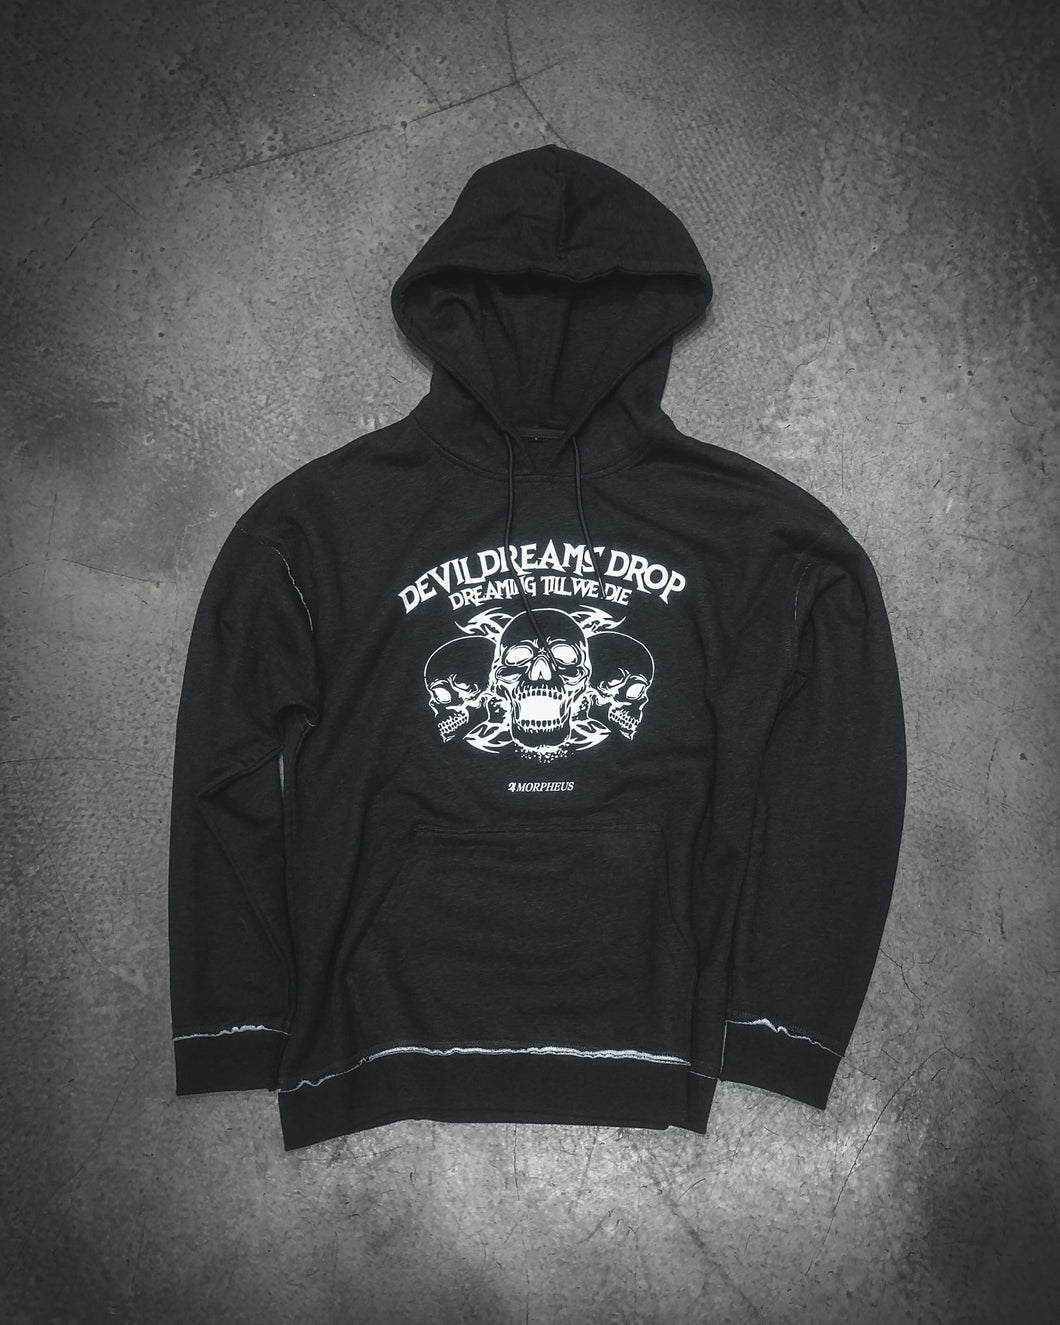 DEVIL DREAMS DROP HOODIE